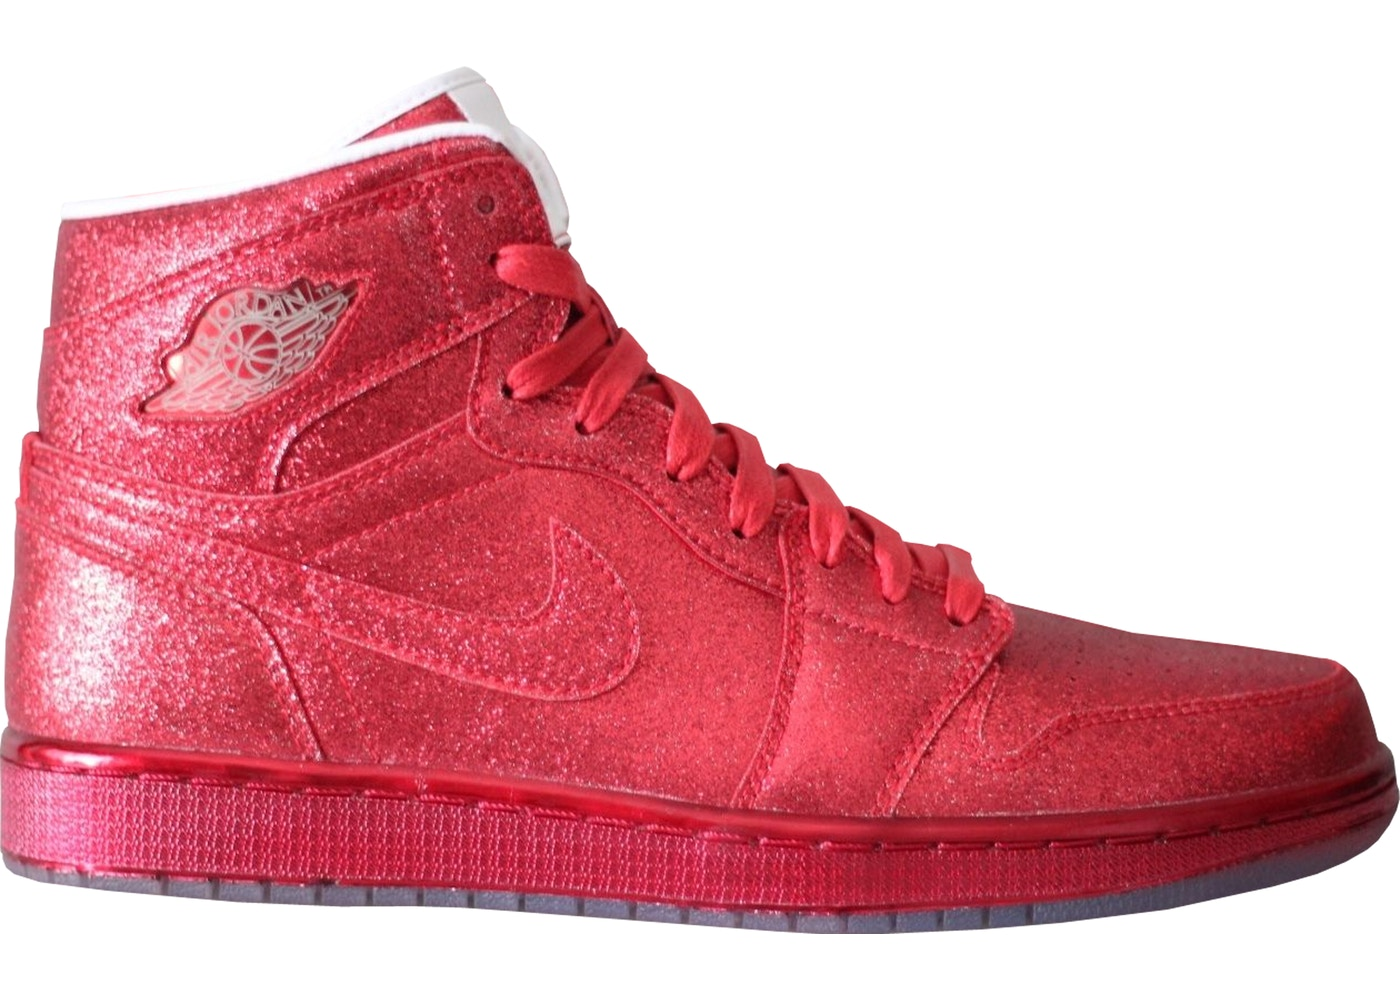 Air Jordan 1 Shoes - Average Sale Price bbbbd8cd0a